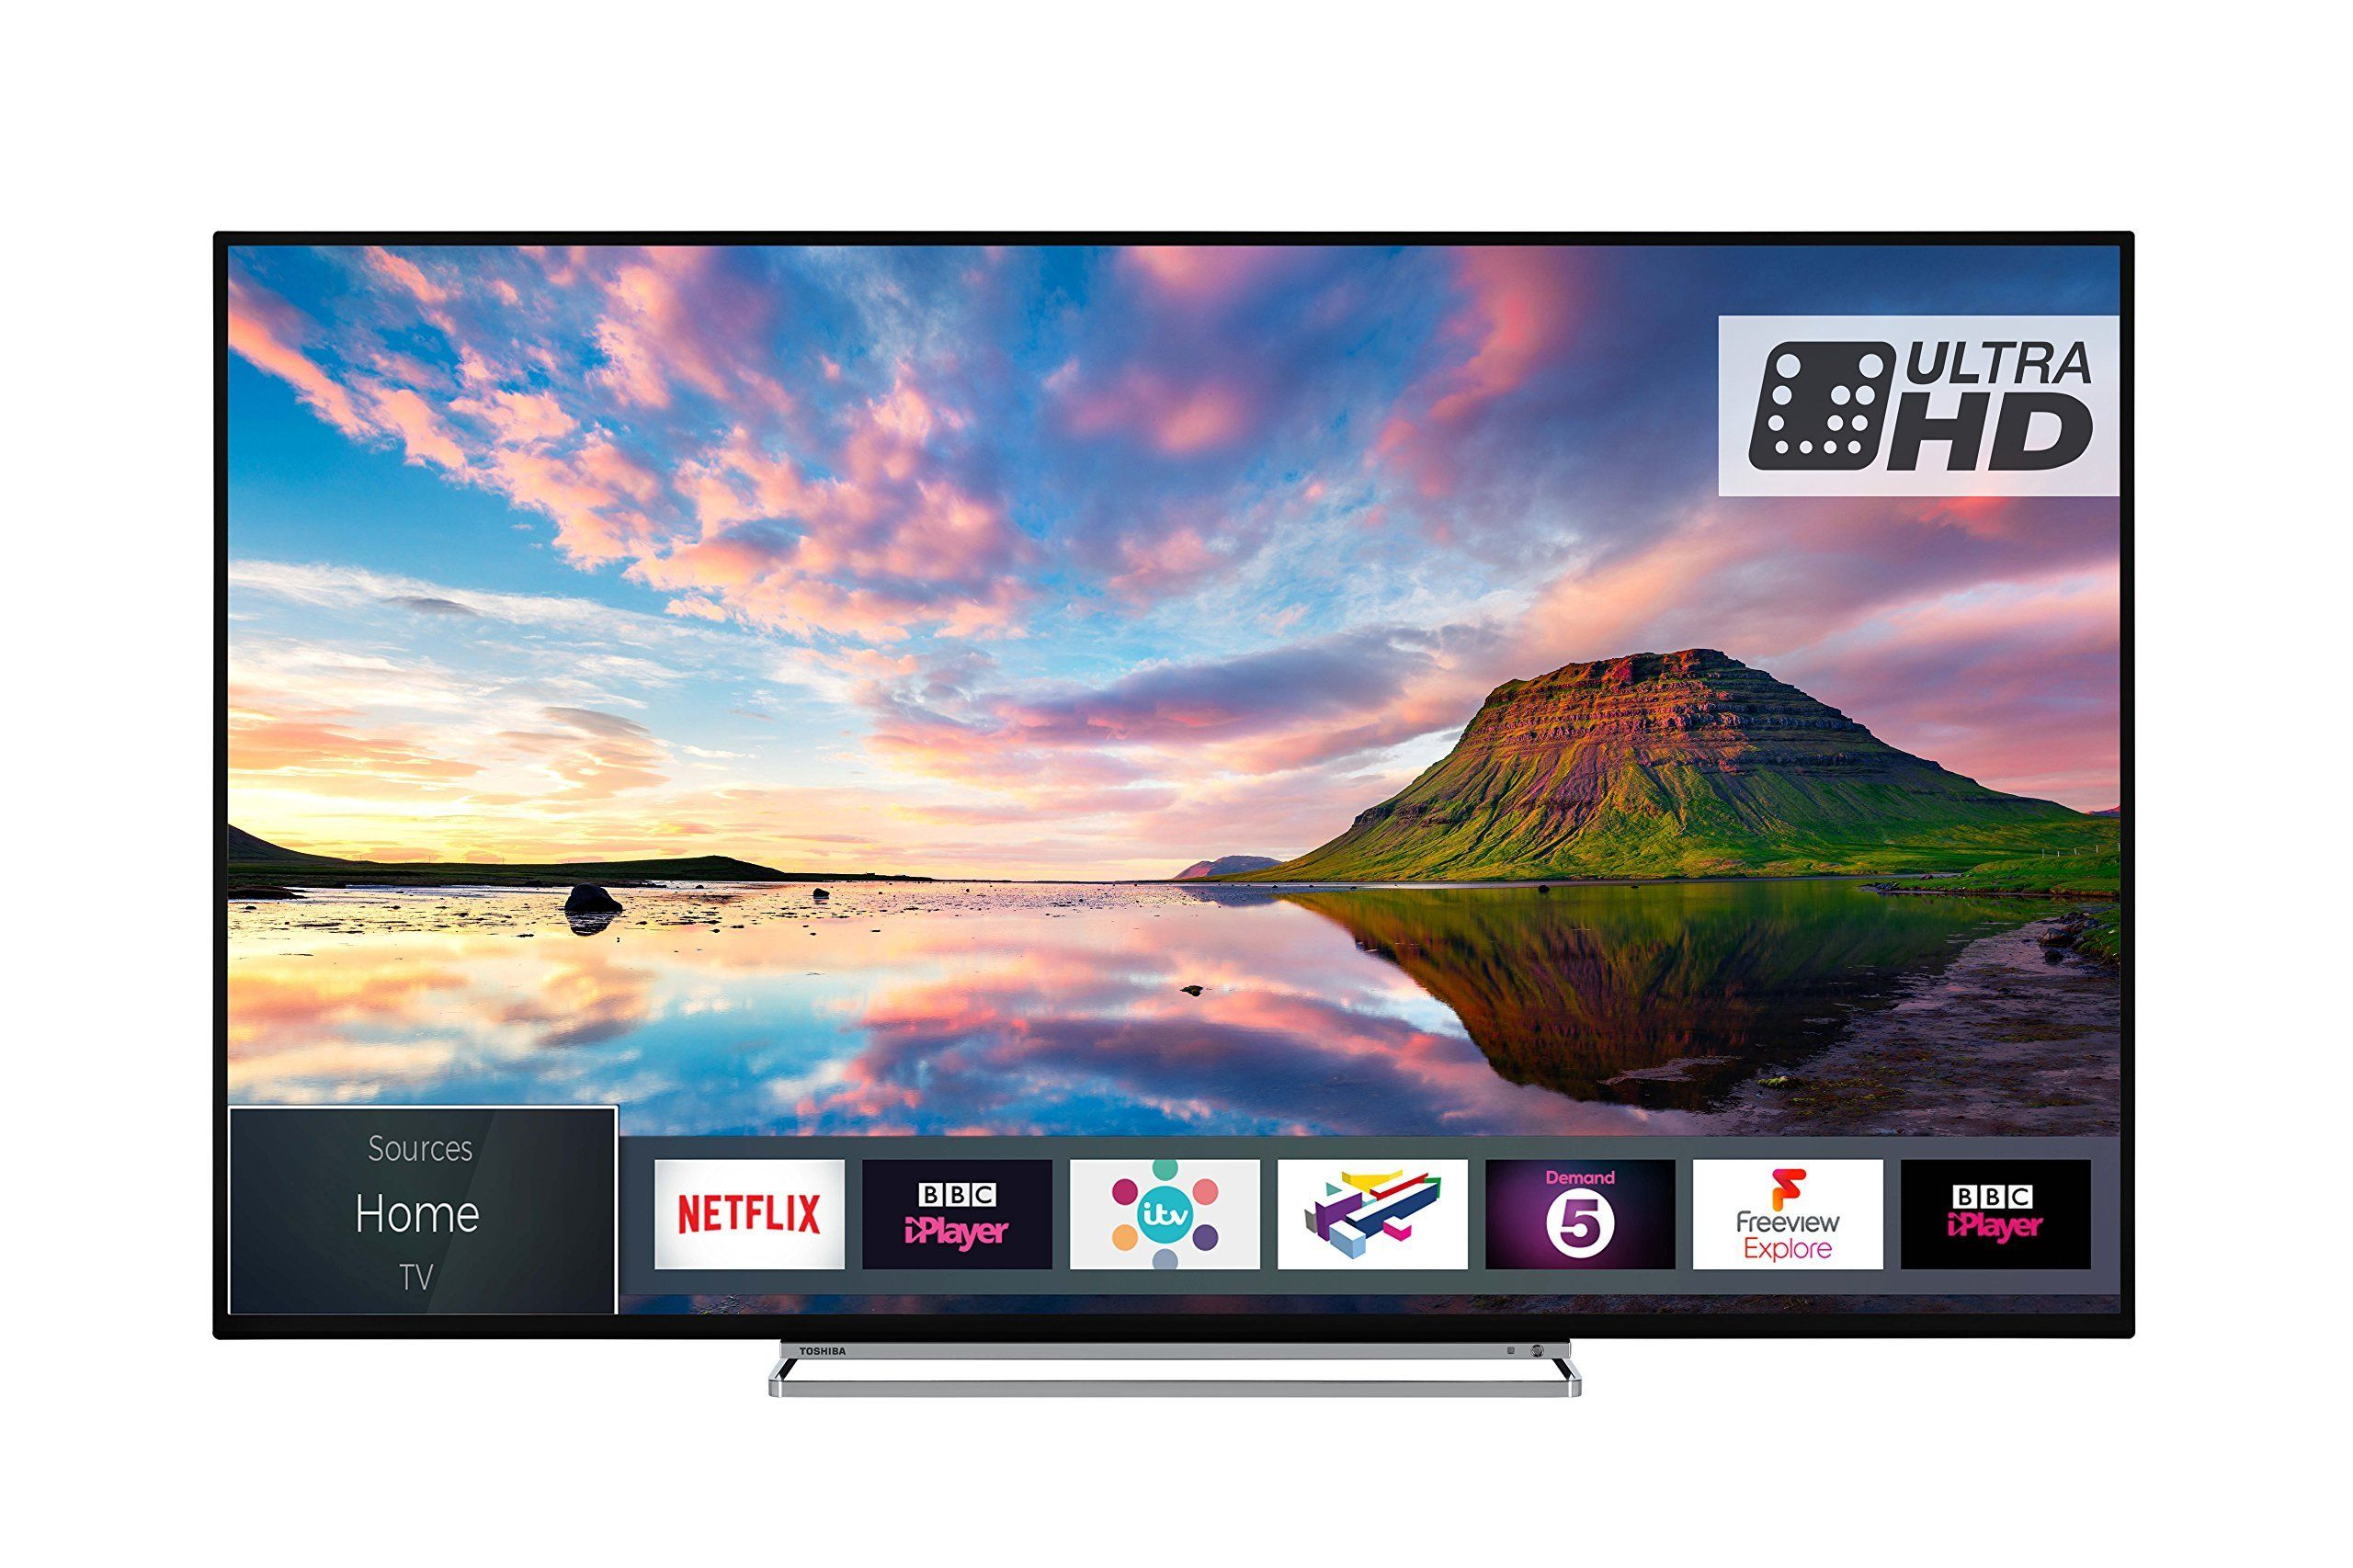 Toshiba 43u5863db 43 Inch Smart 4k Ultra Hd Hdr Led Tv With Freeview Play Black Silver Live And Breathe The On Screen Action Wi Smart Tv Led Tv Tv Display